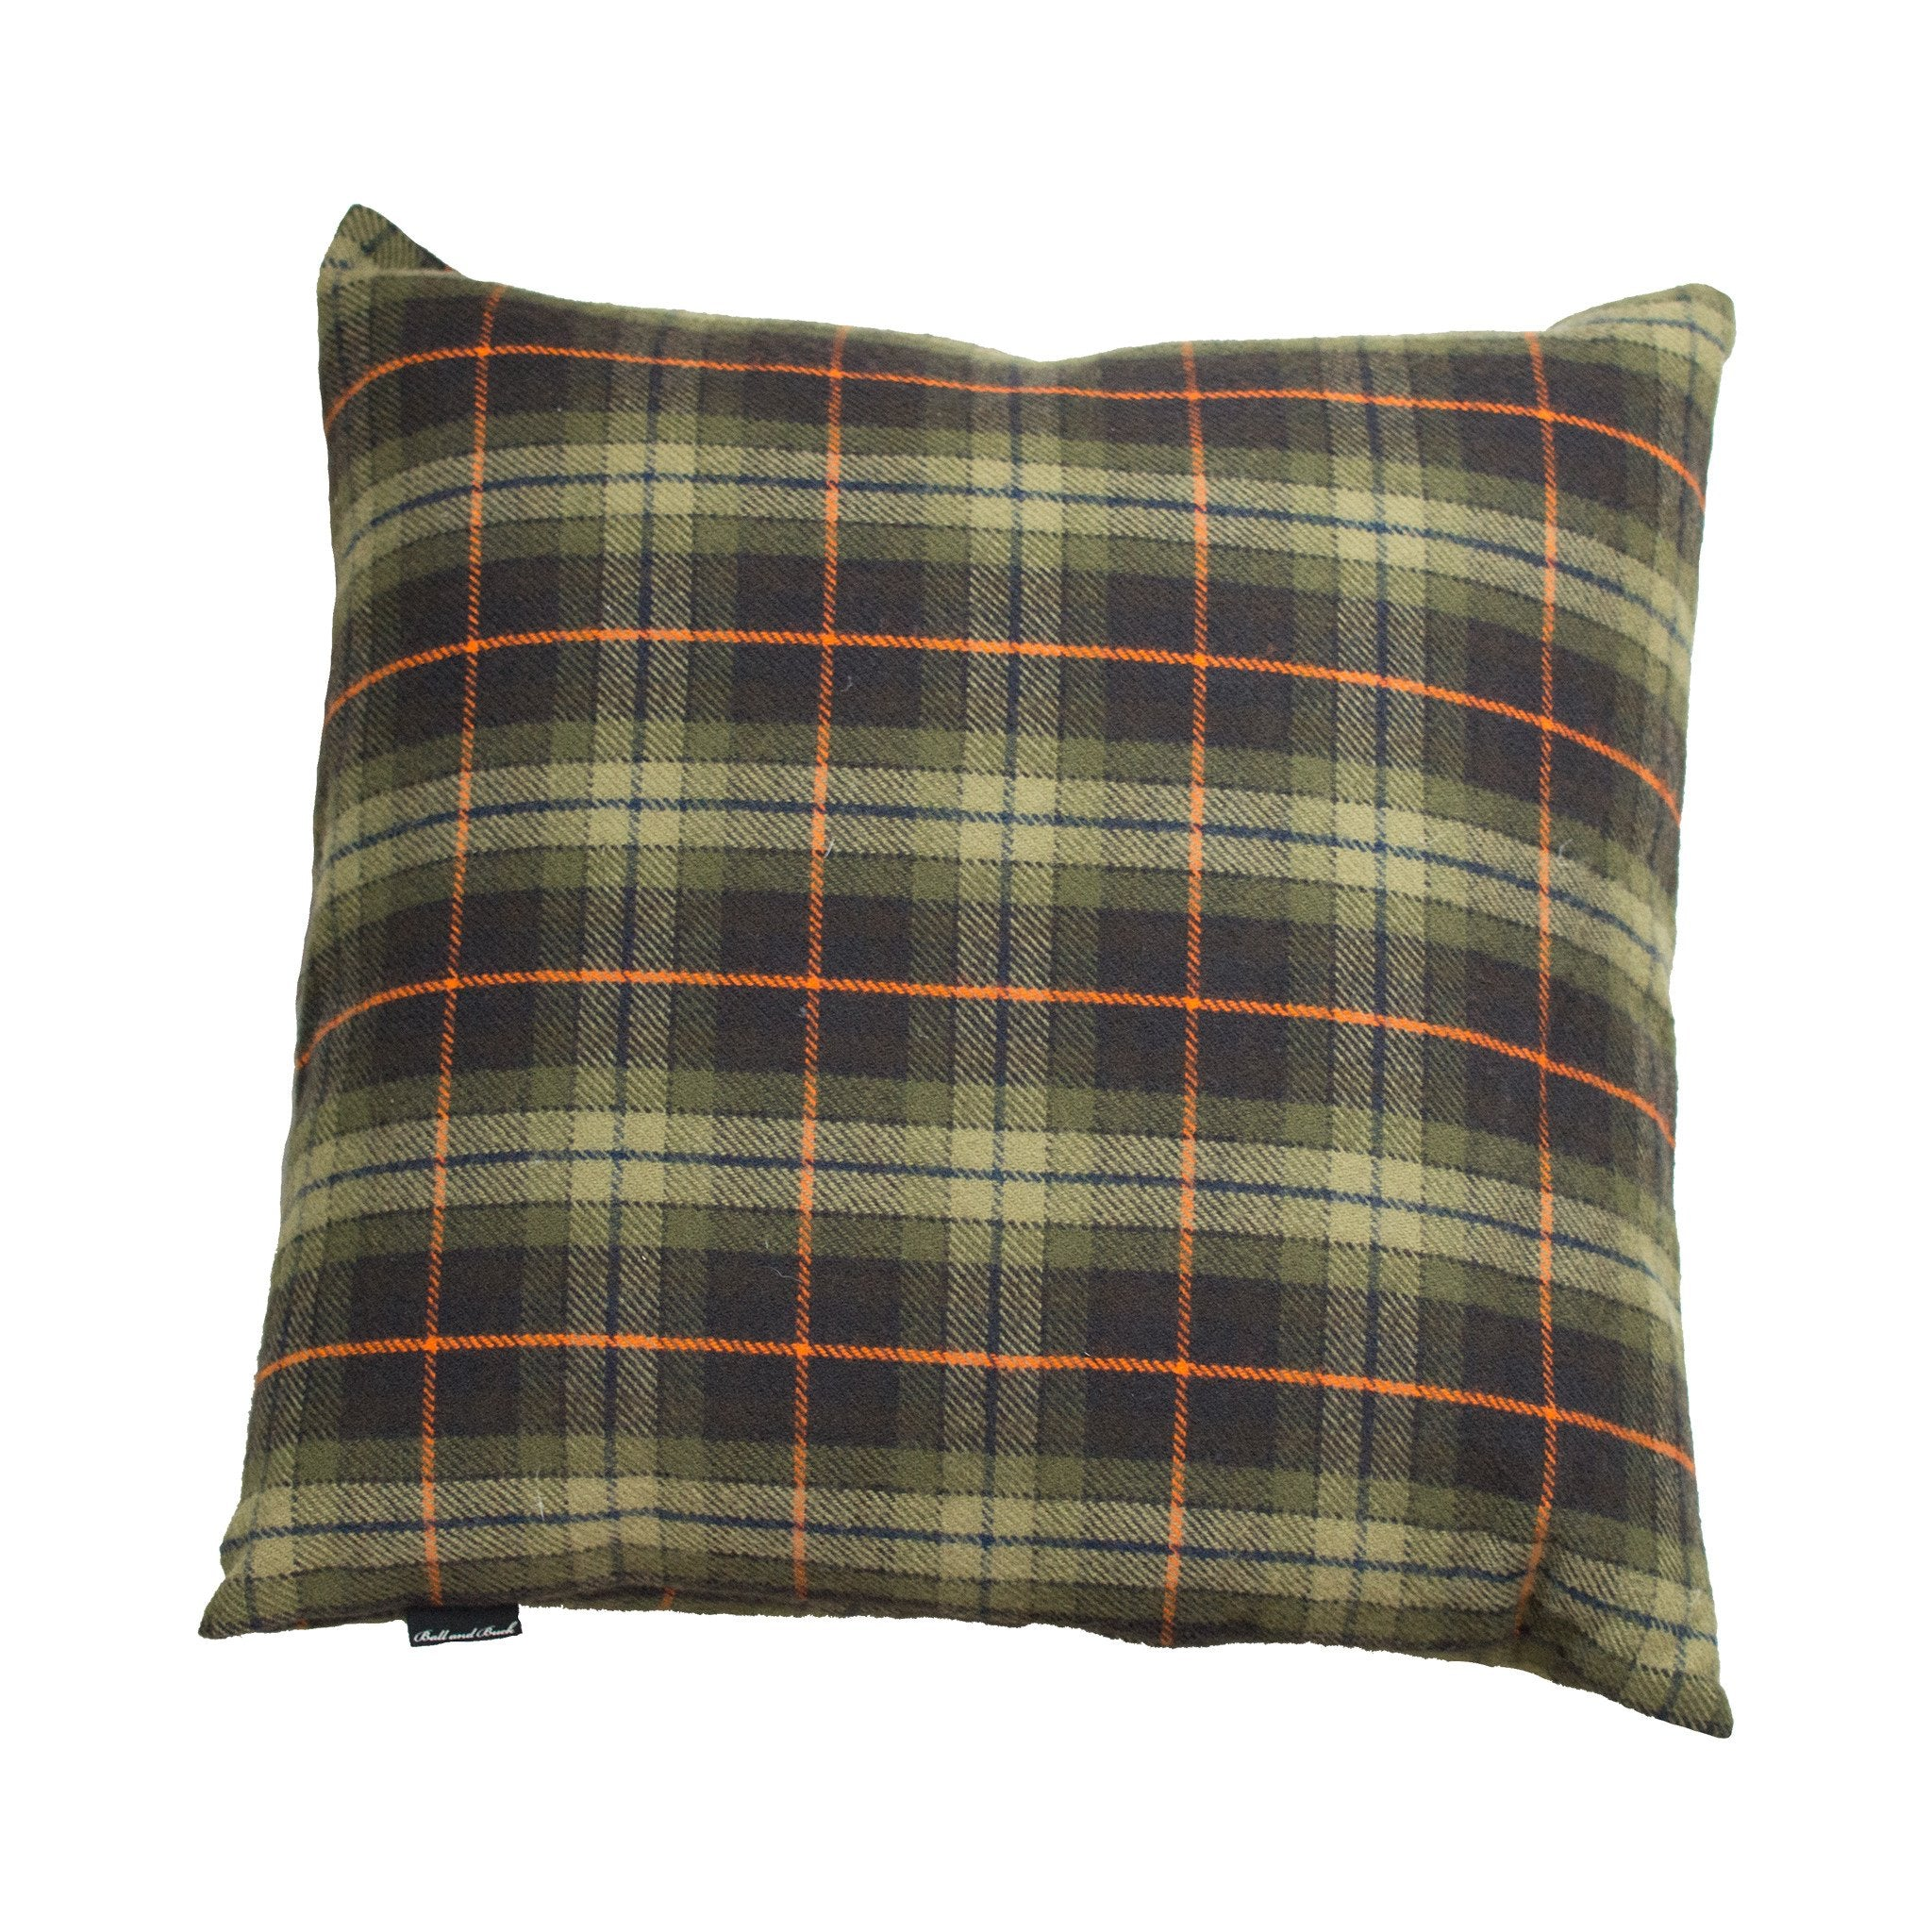 Merino Wool Pillow, Signature Plaid